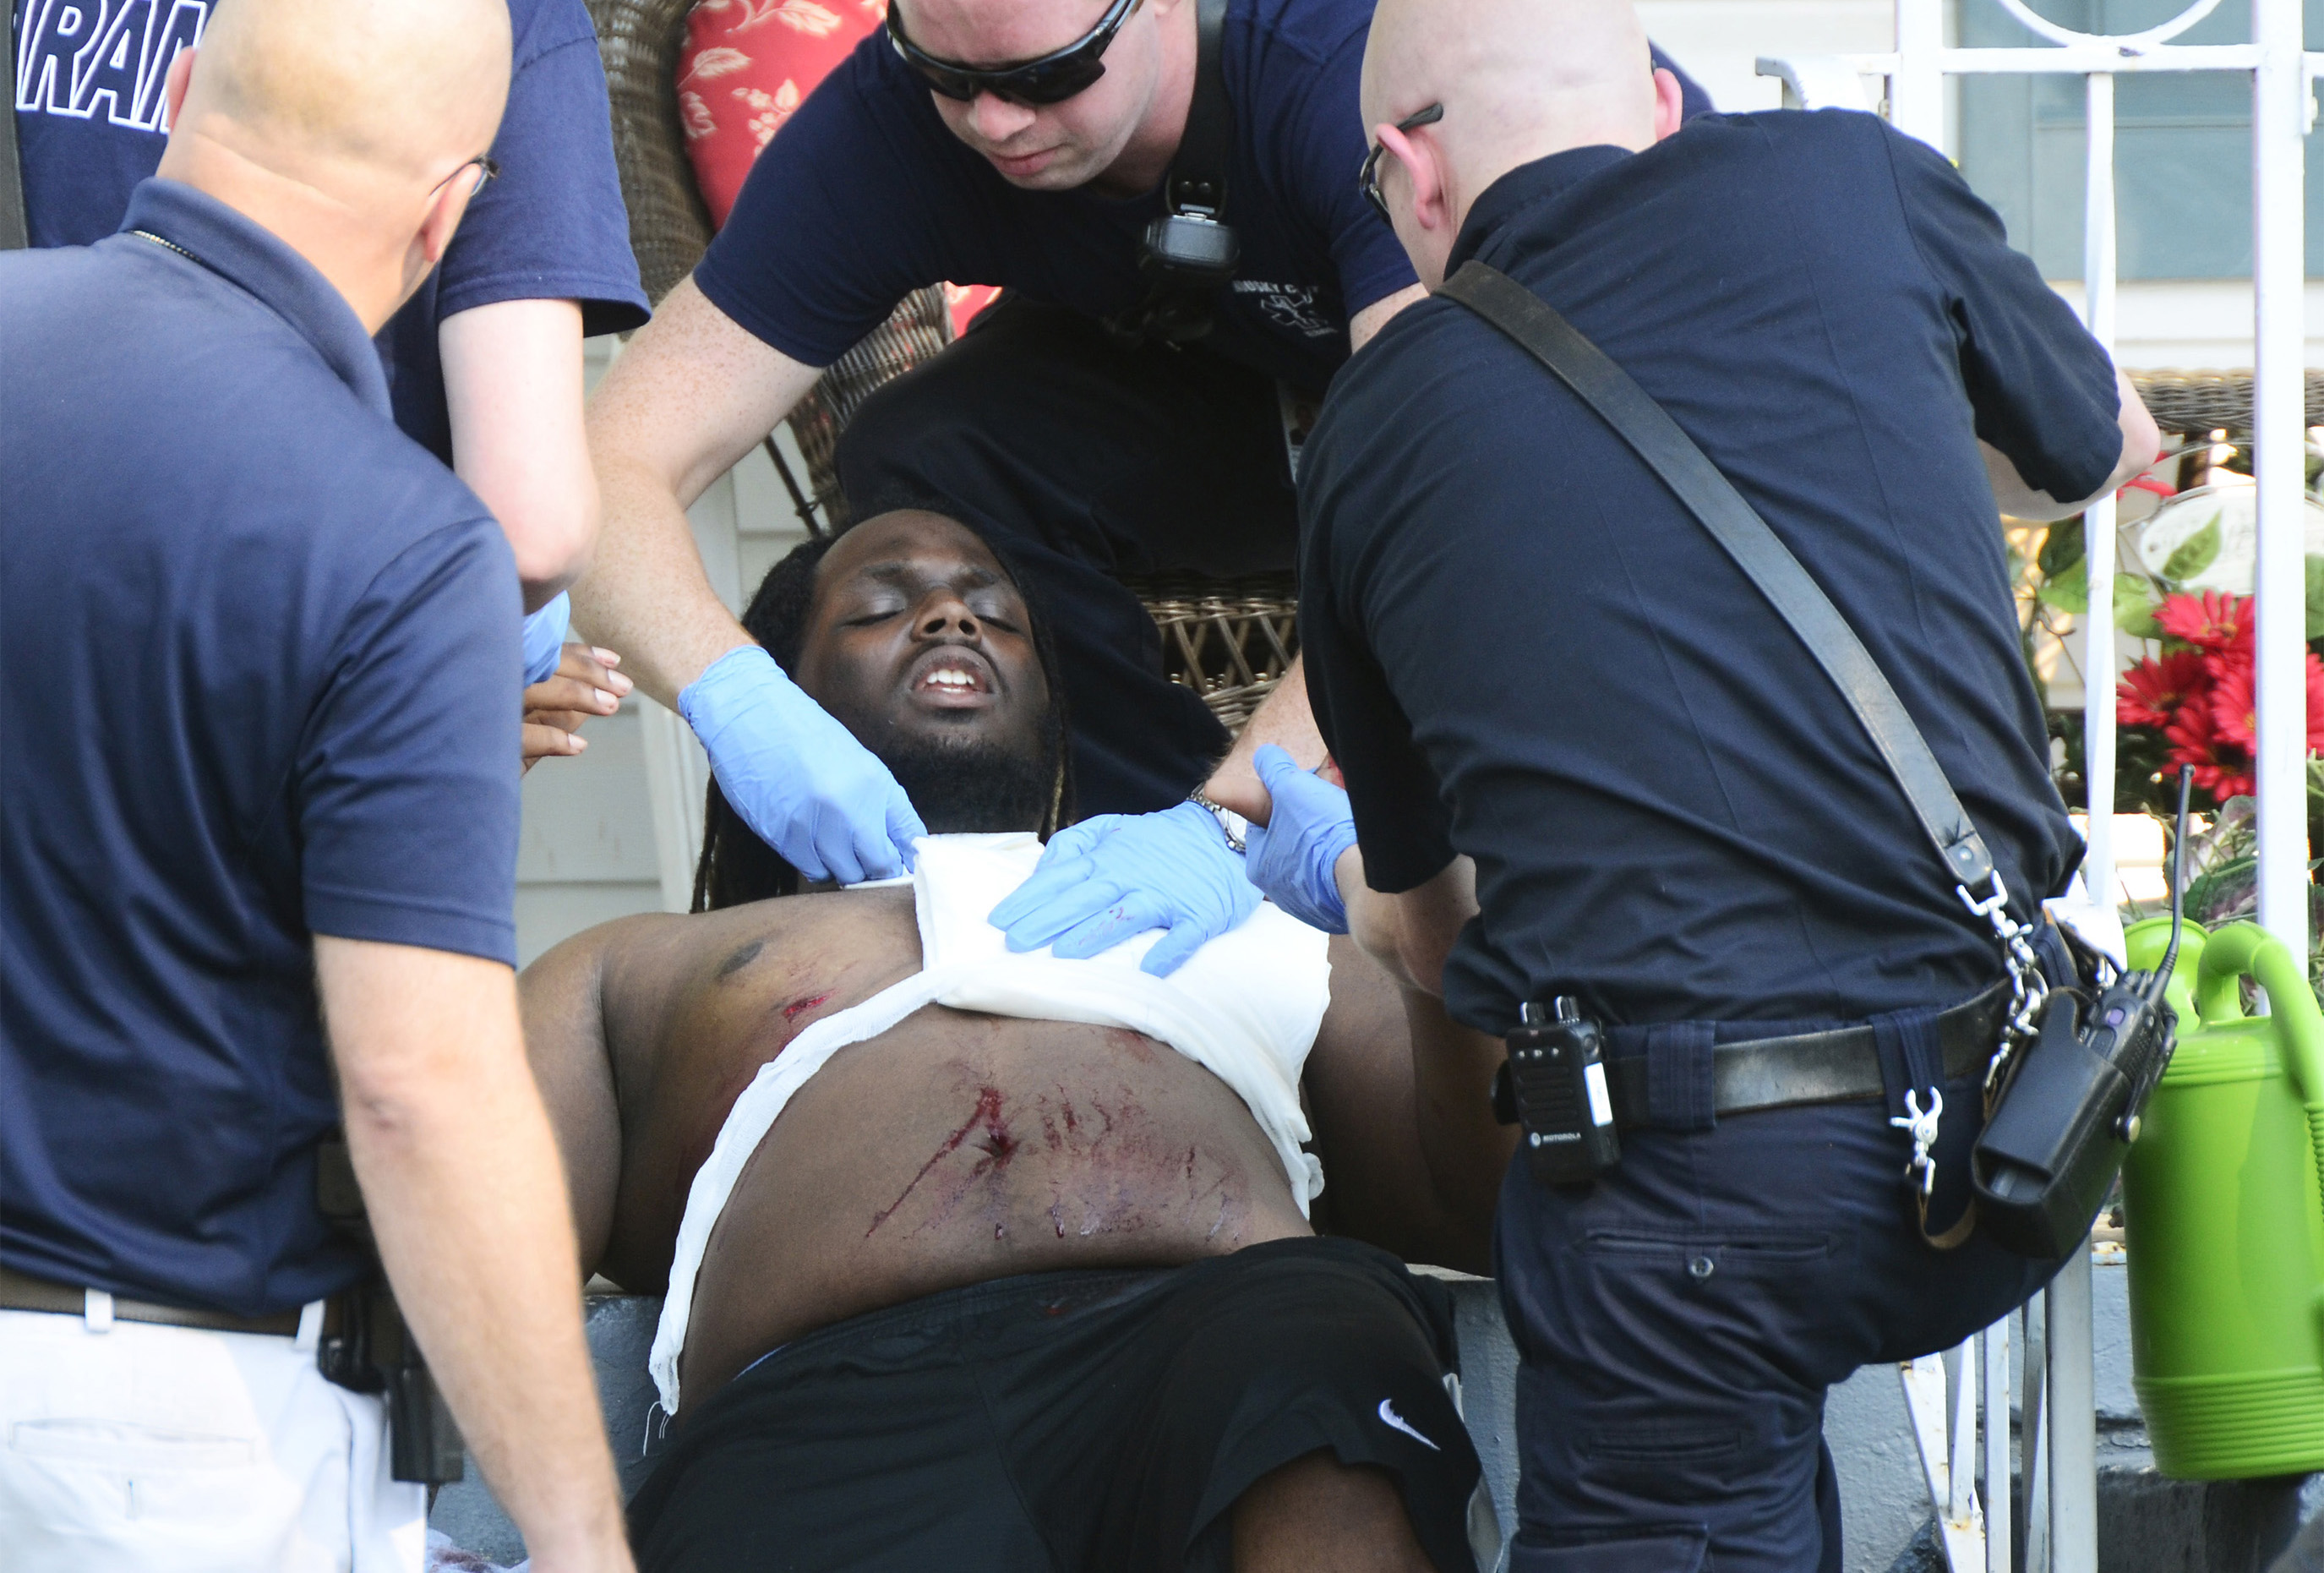 Evan Jerome Conley of Fremont is transported to the hospital after he was allegedly stabbed by his brother, Philip Eric Conley, over a social media post on Second Street in Fremont.